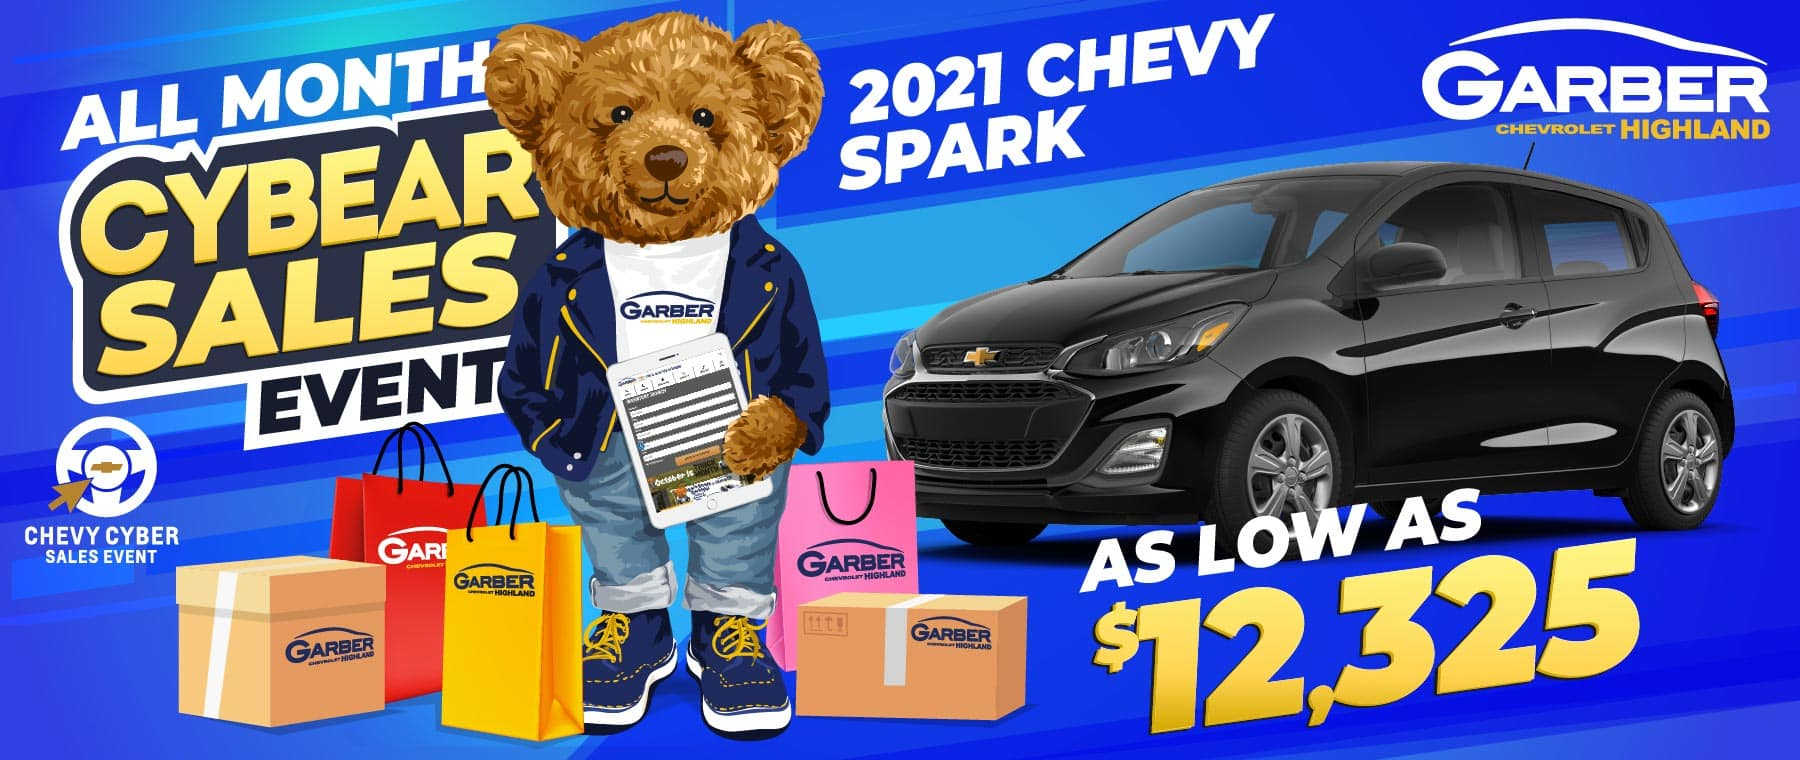 2021 Chevy Spark - SAVE up to $12,325